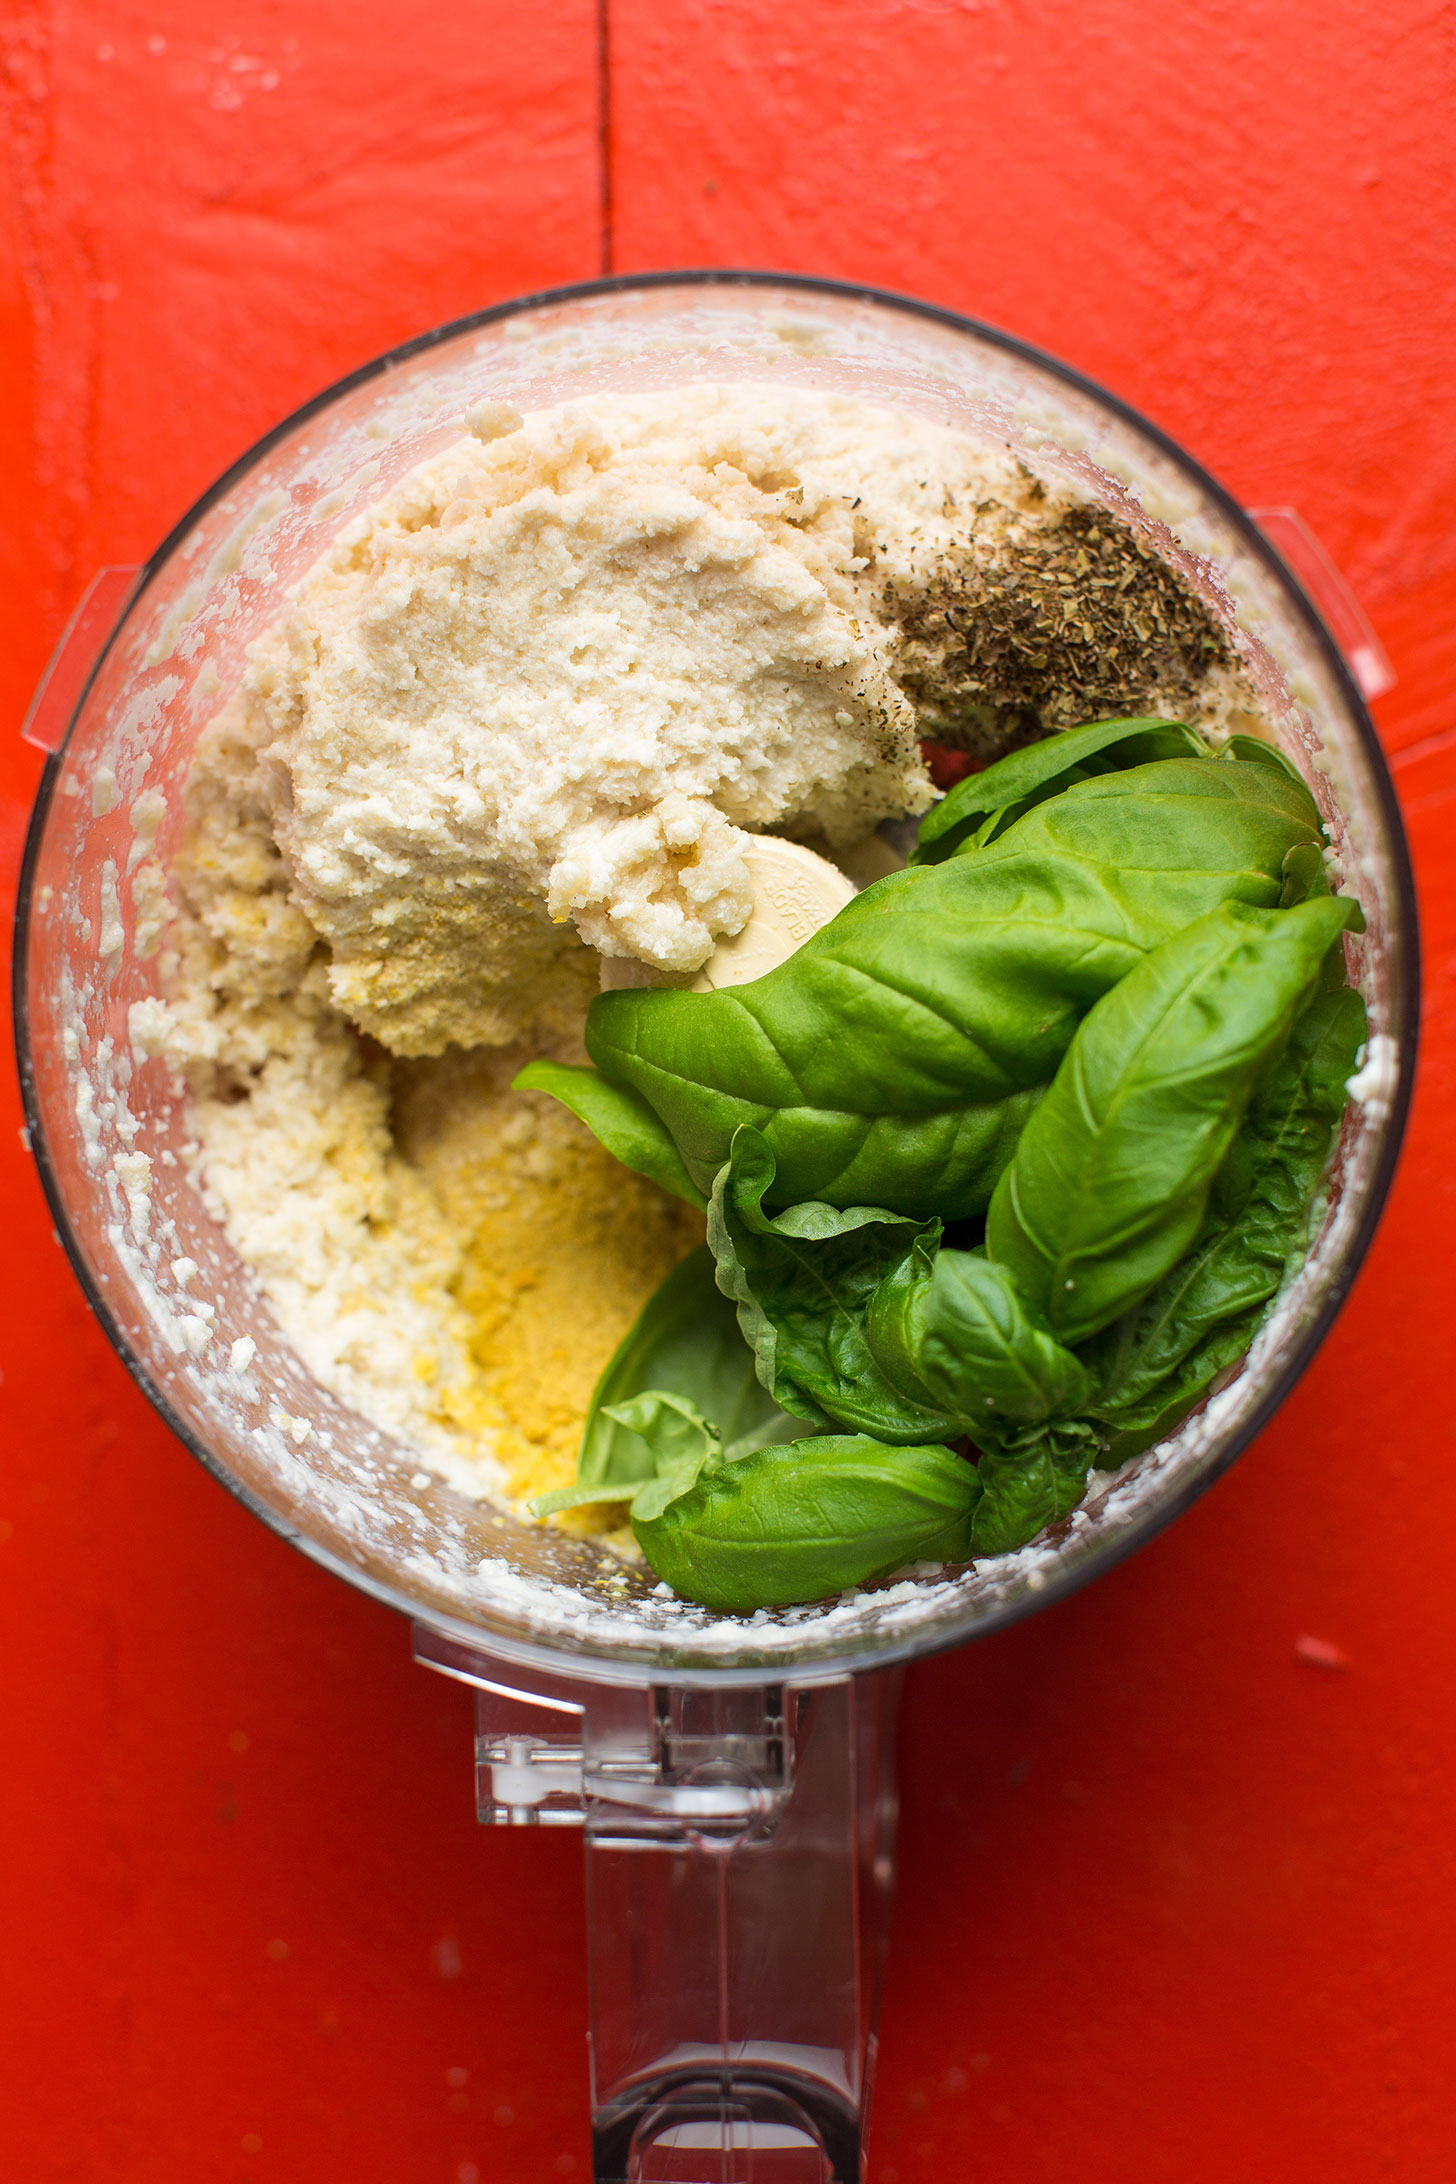 Vegan gluten free zucchini lasagna minimalist baker recipes food processor with ingredients for making our nut ricotta for vegan lasagna forumfinder Image collections